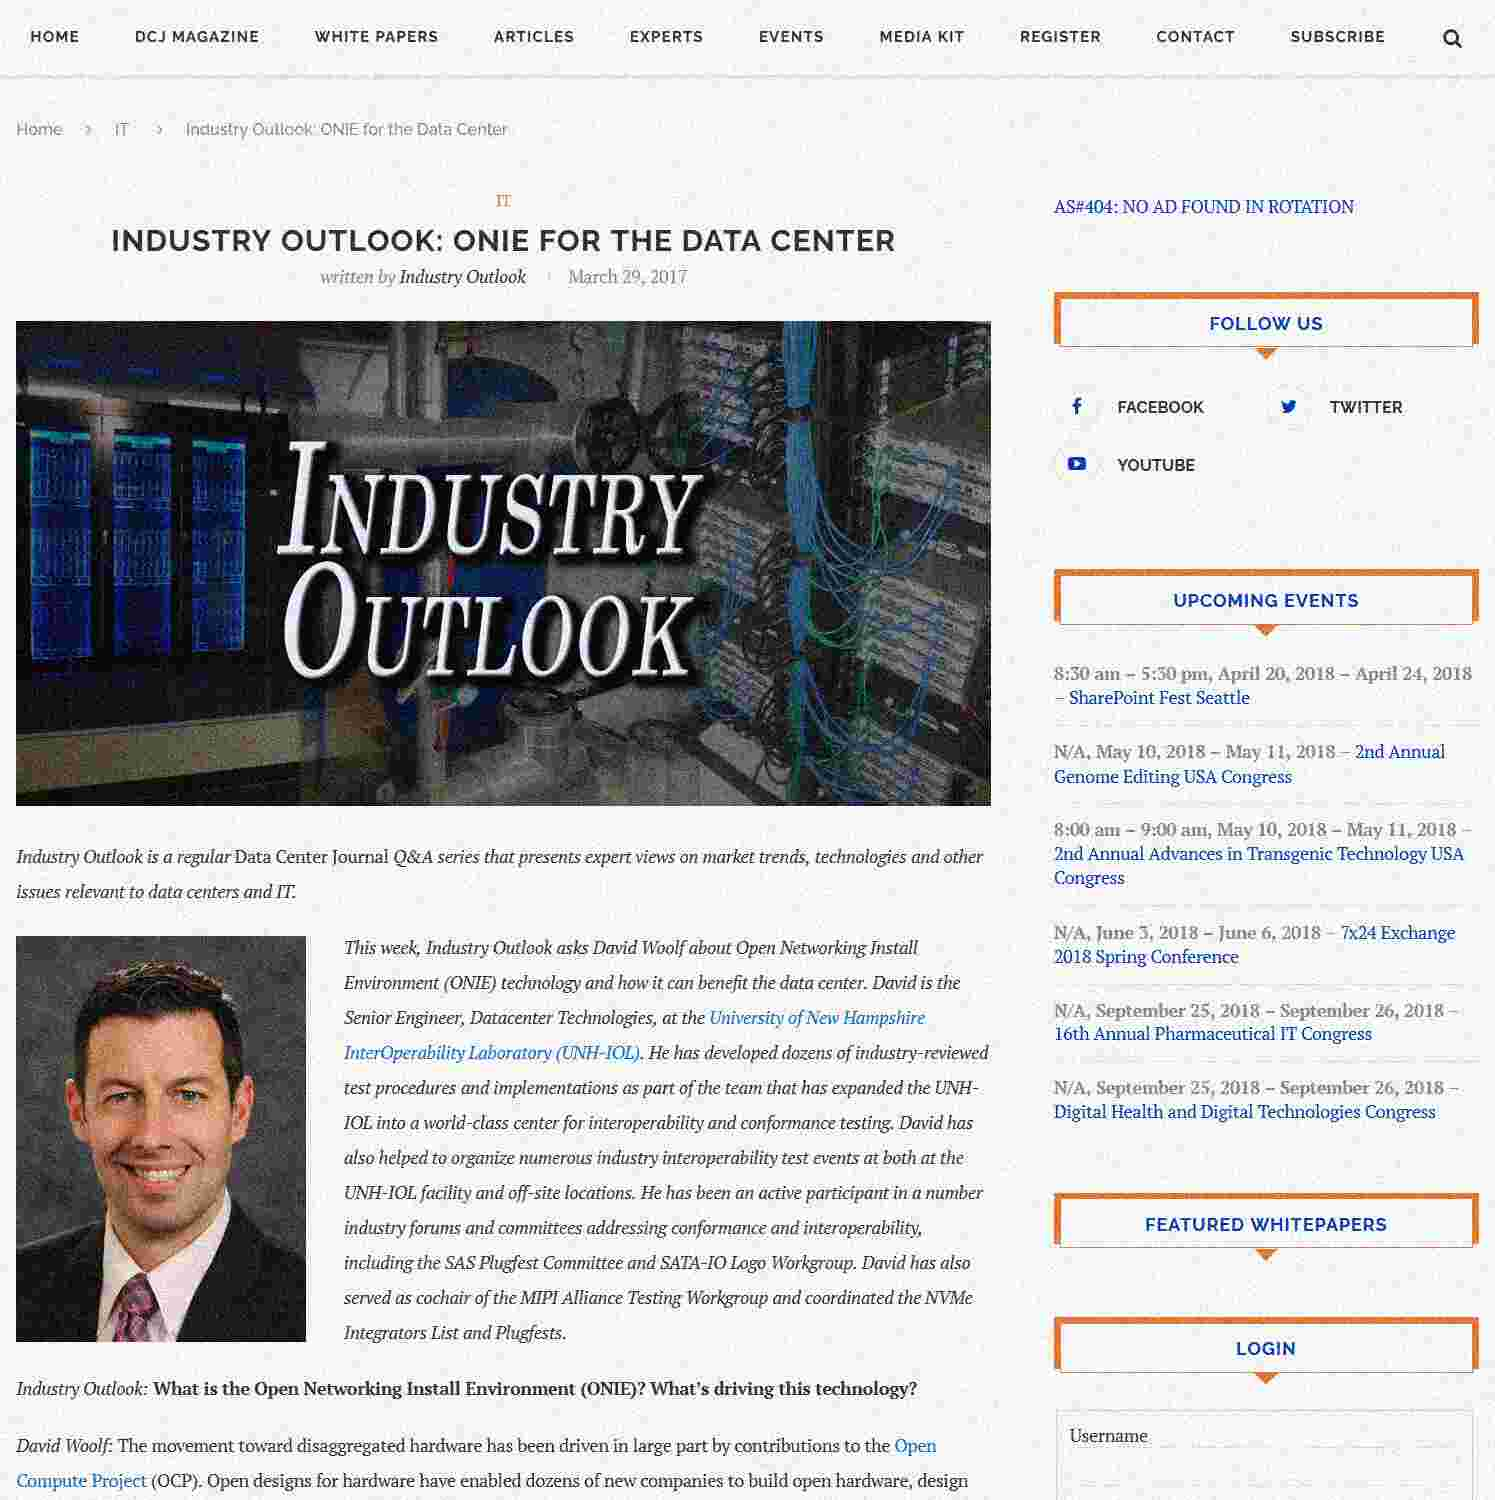 Illustration of Industry Outlook: ONIE for the Data Center